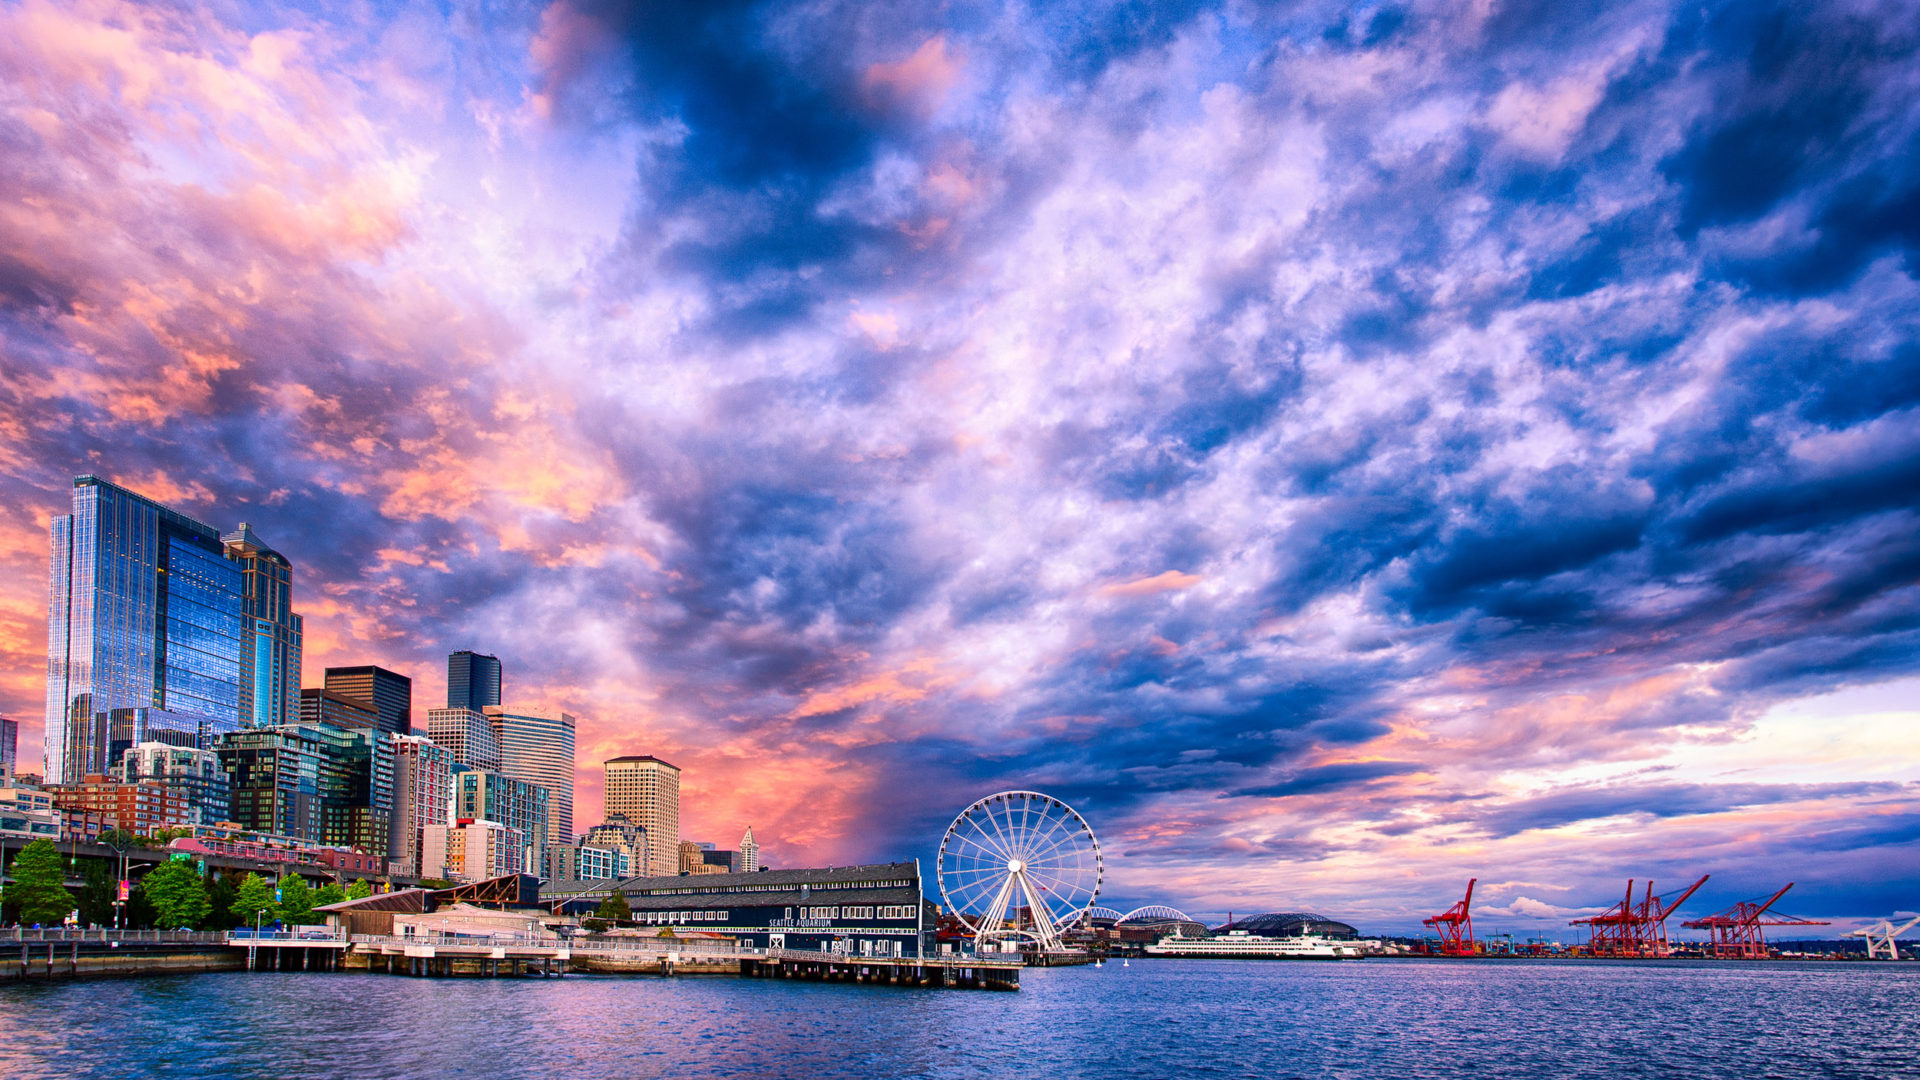 Nyc Iphone X Wallpaper Sunset On The Seattle Waterfront Desktop Wallpaper Hd